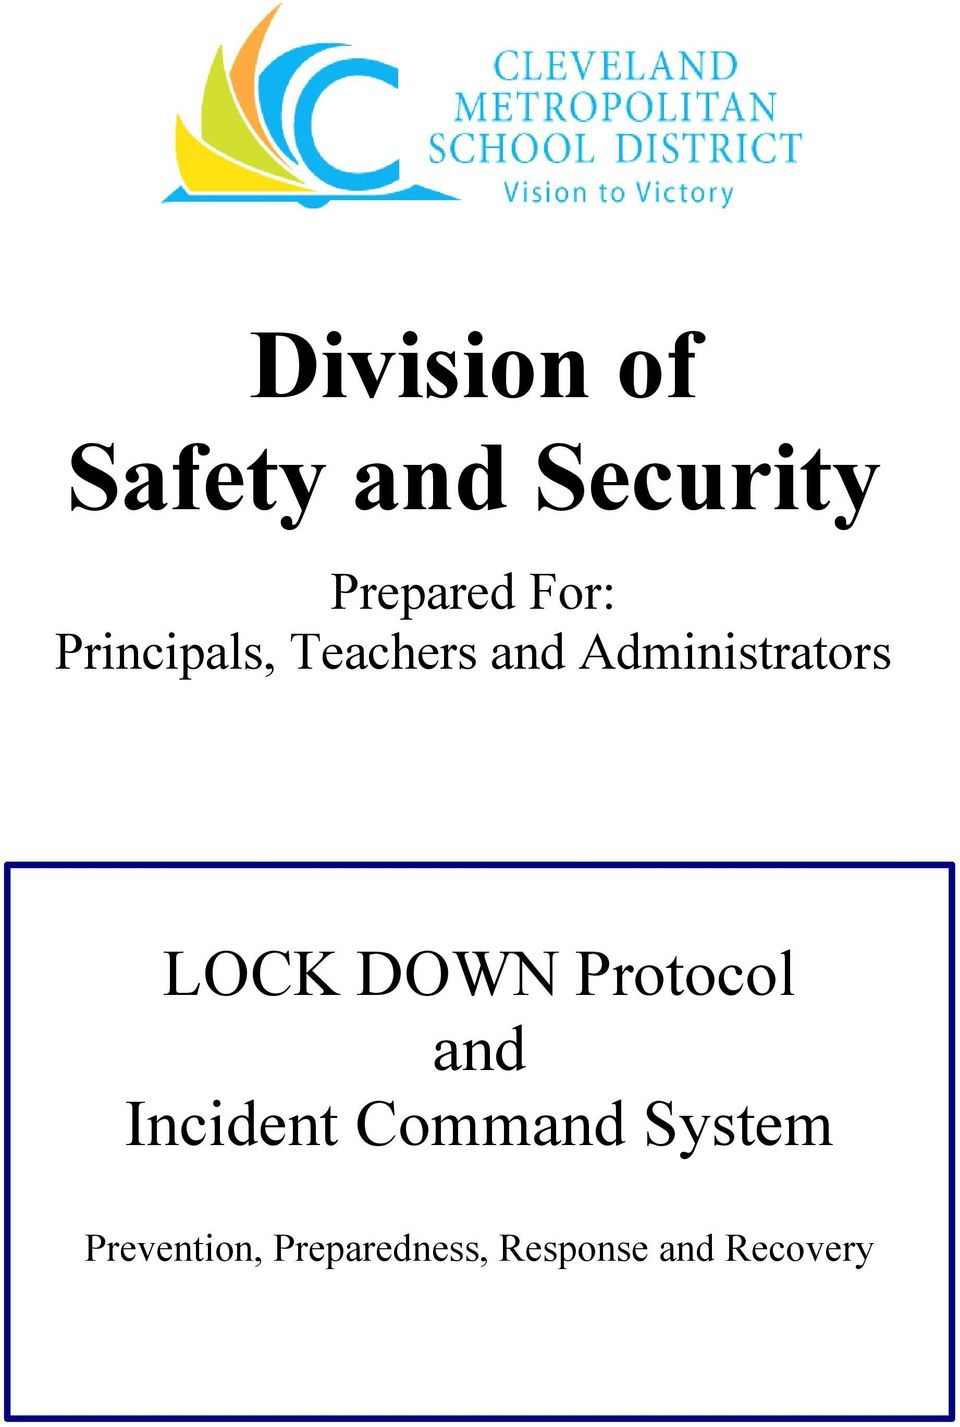 LOCK DOWN Protocol and Incident Command